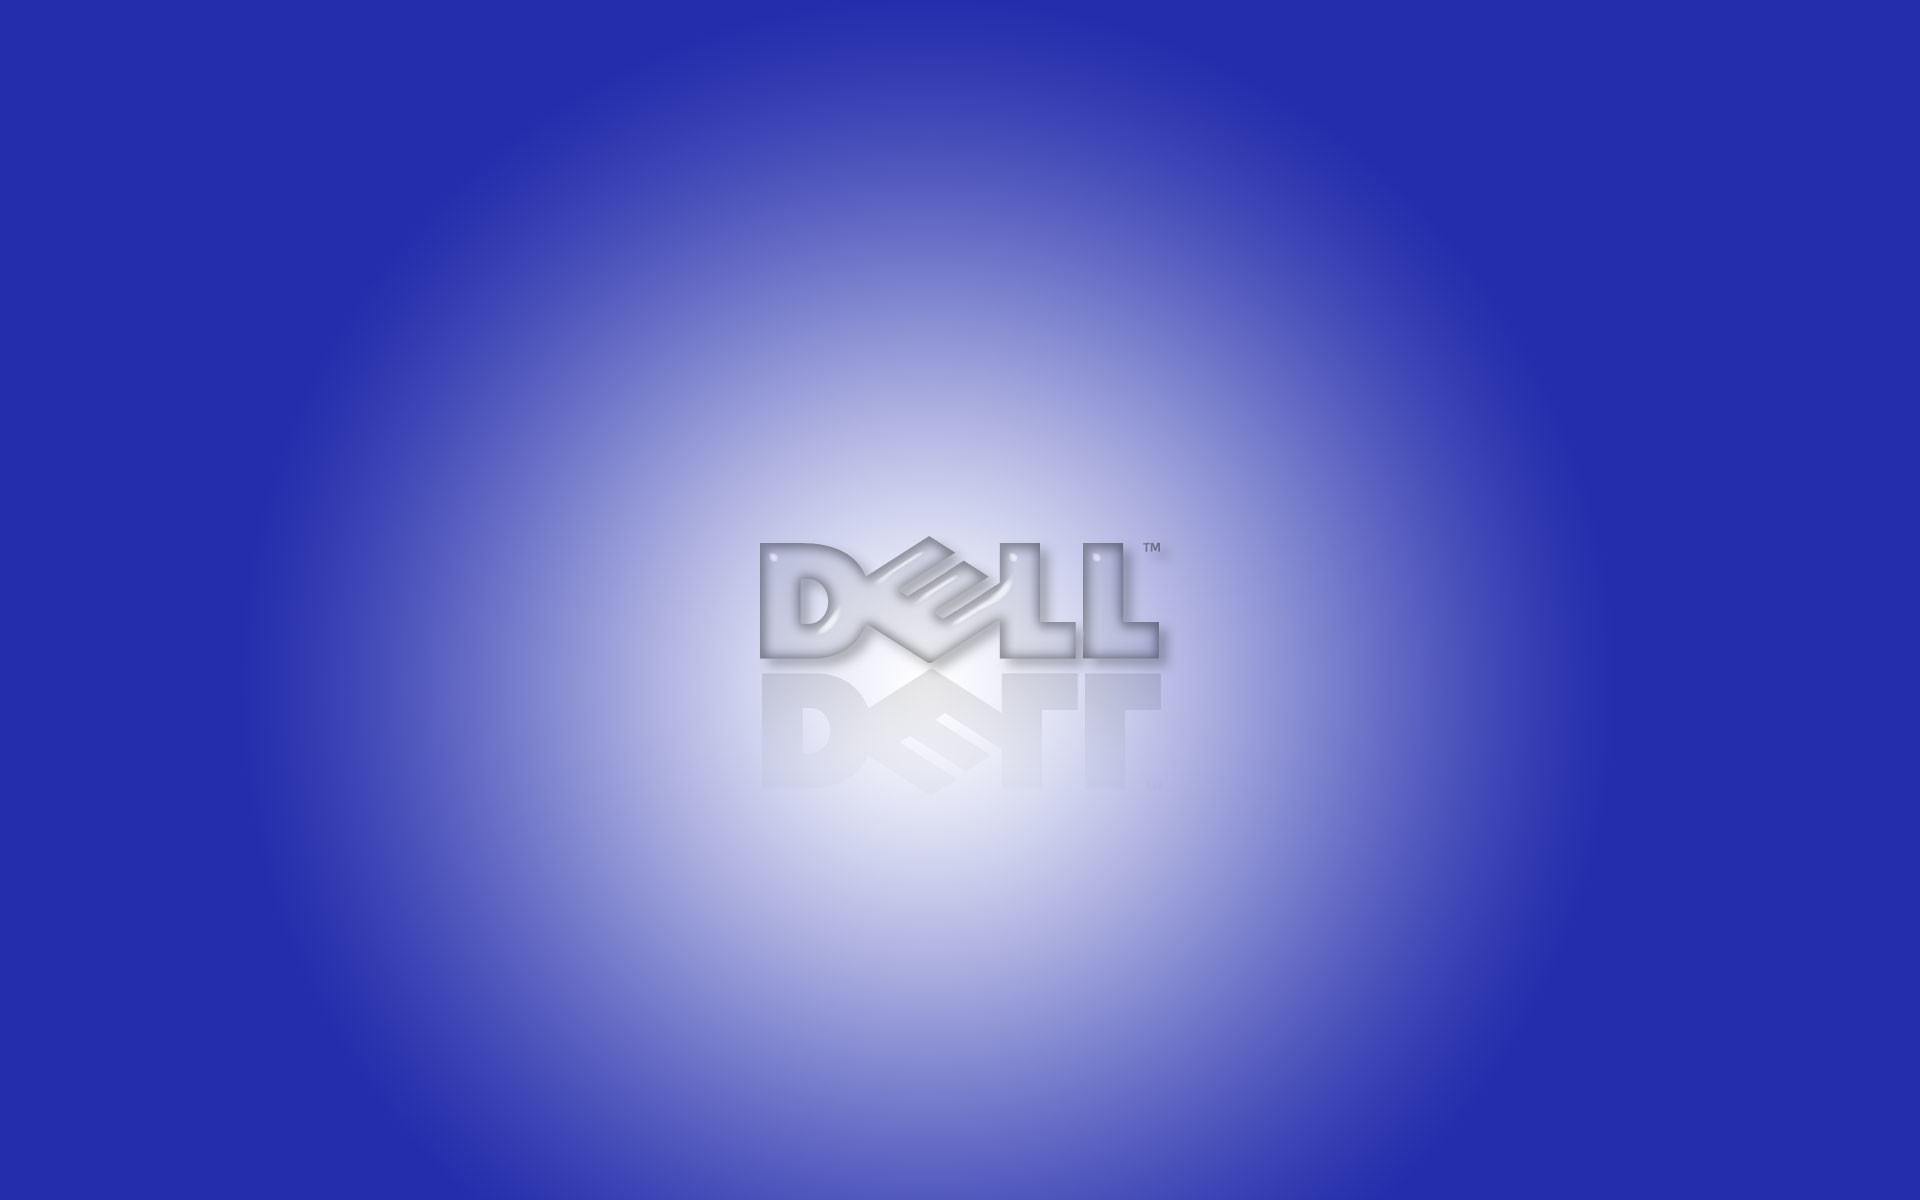 1920x1200 dell xps 15 wallpaper #76909